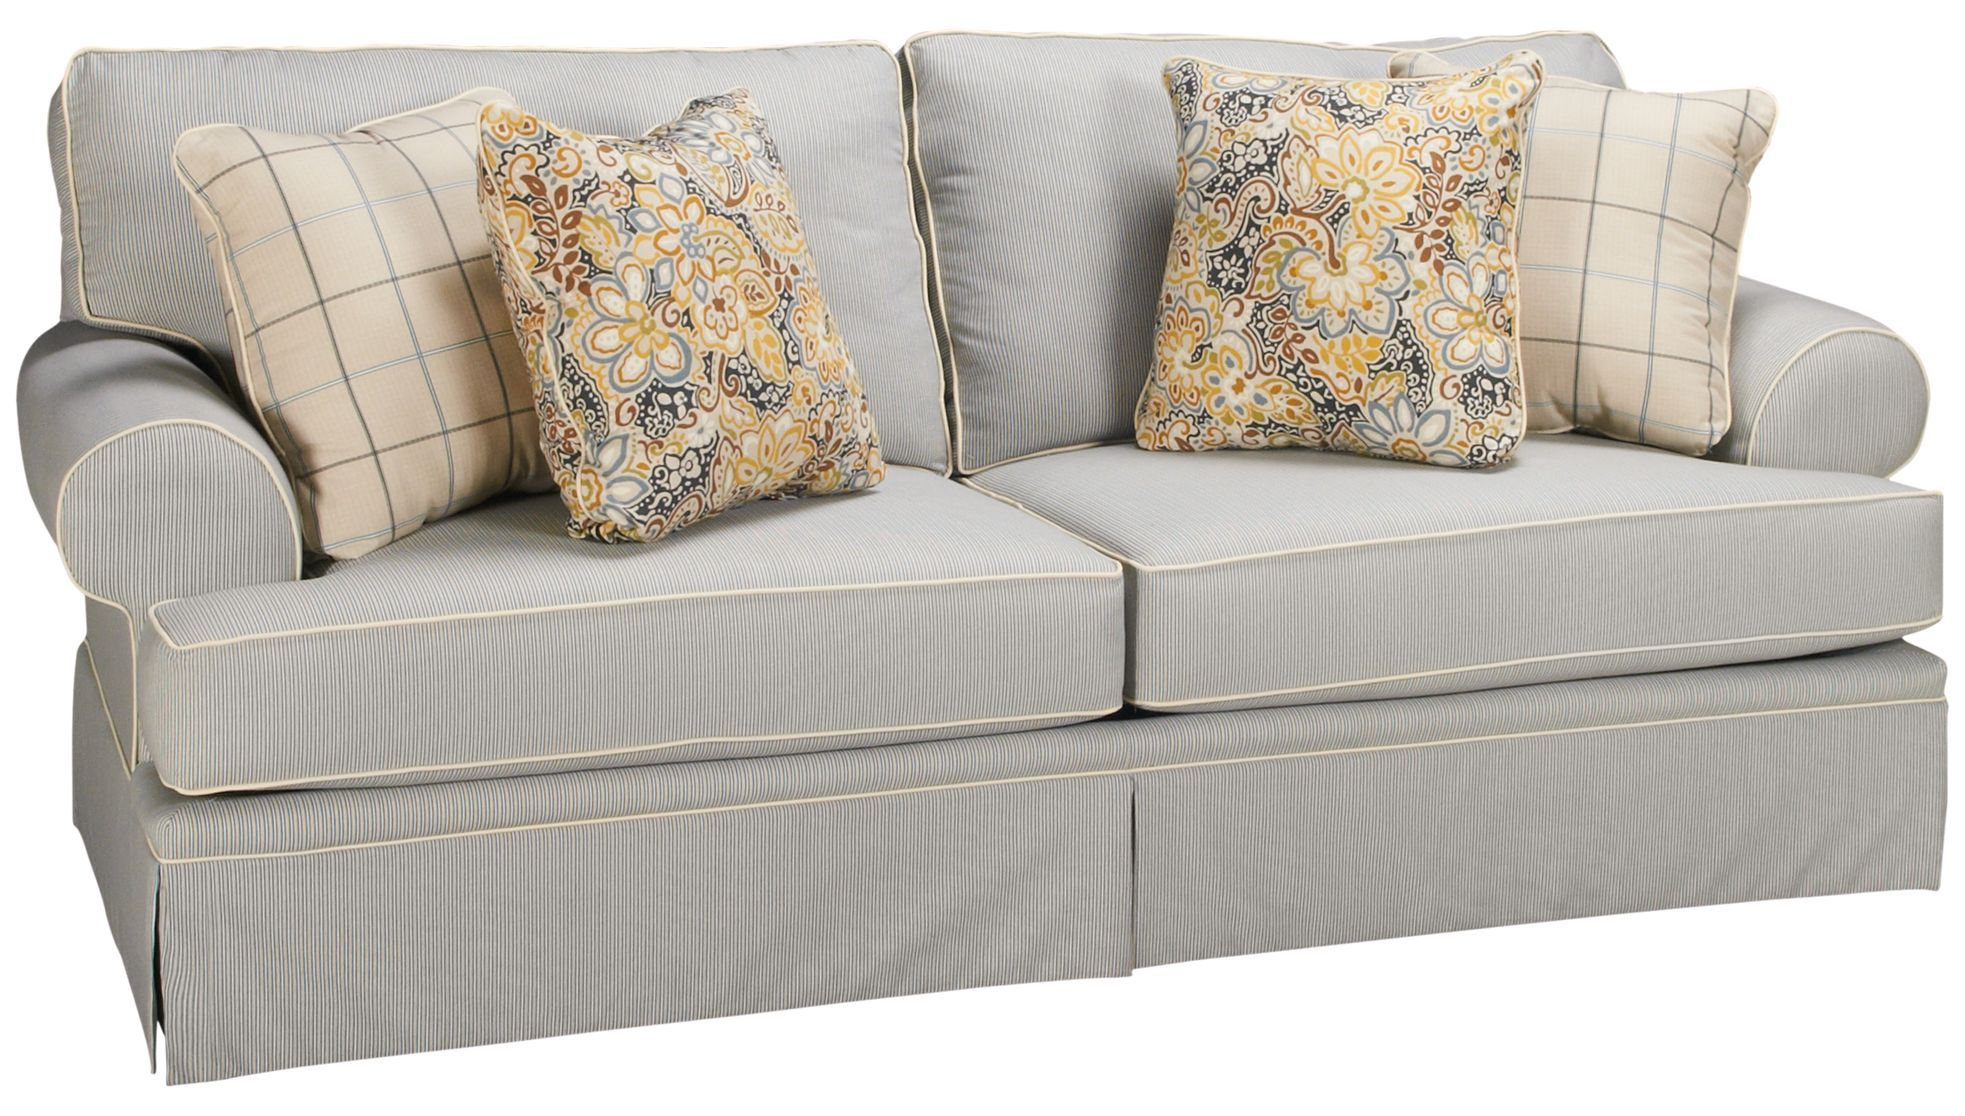 Broyhill Emily Sofa Sofas for Sale in MA, NH, RI